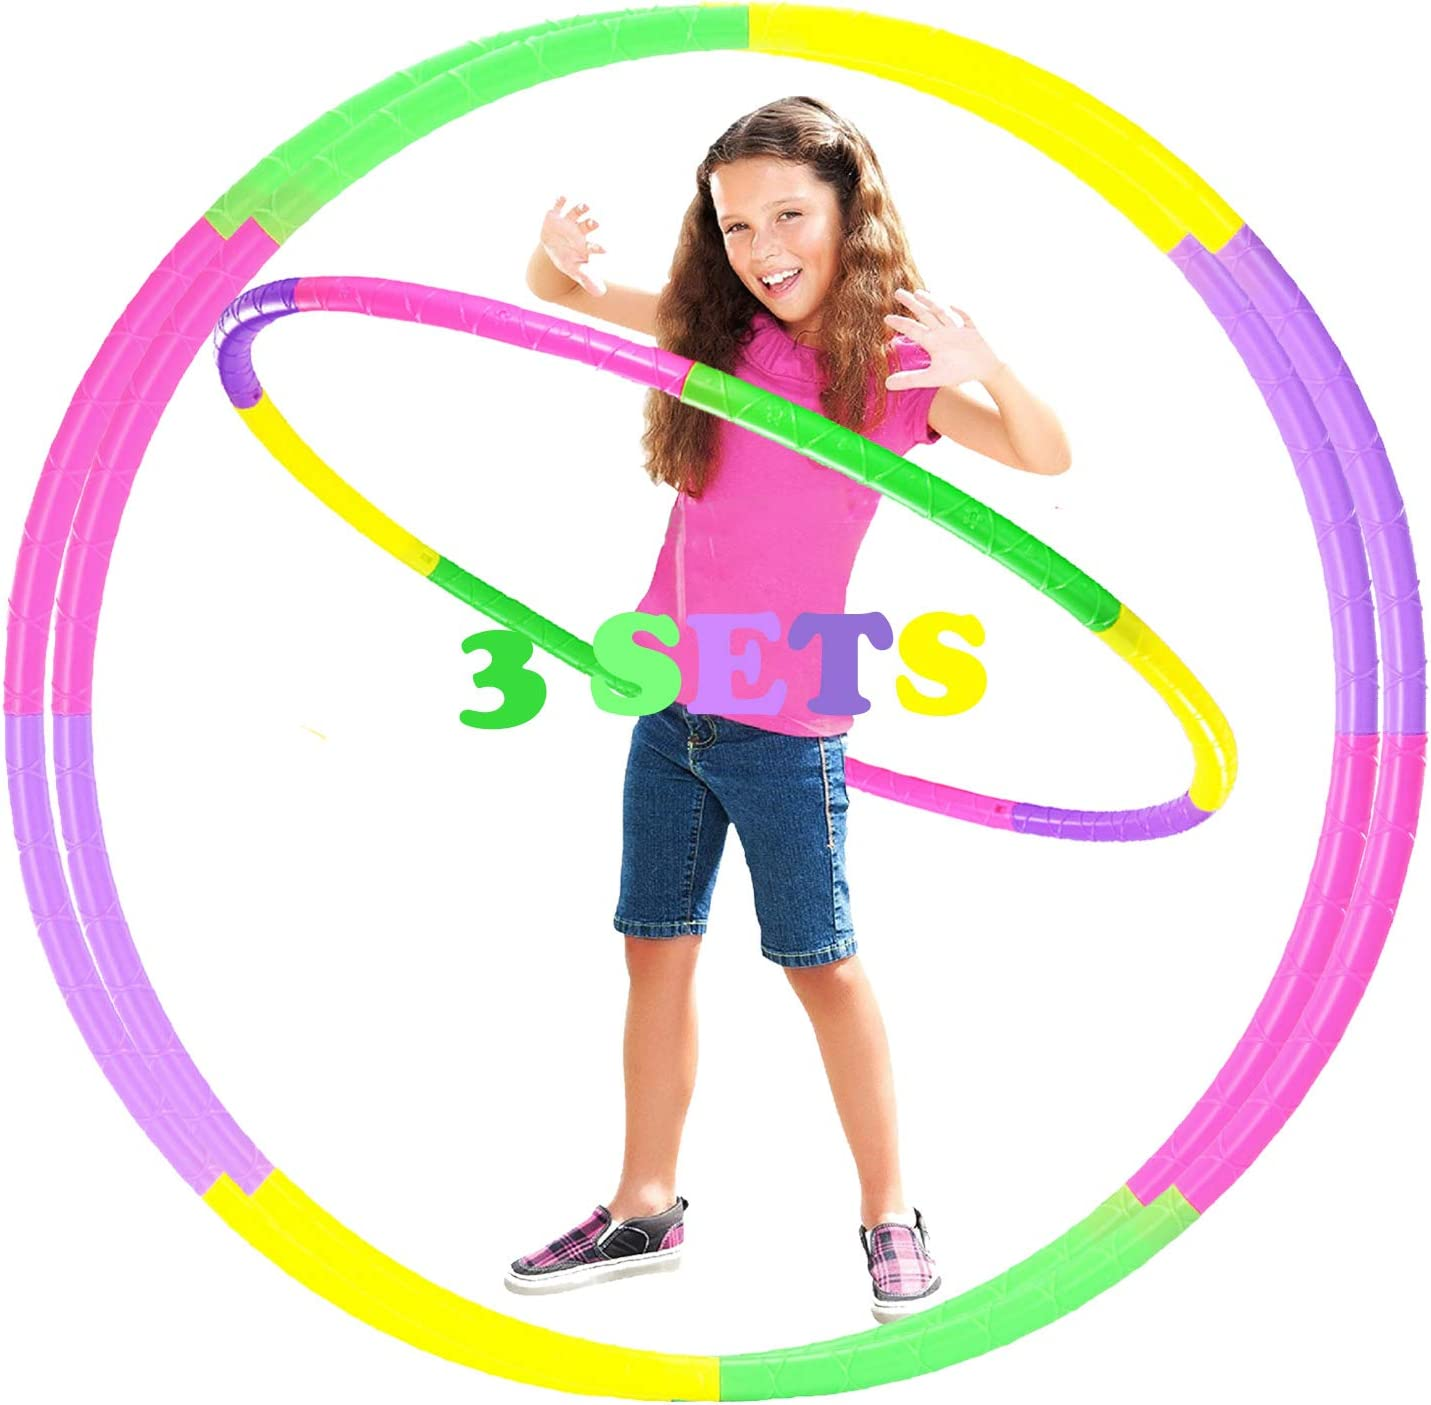 3 Set Kids Hoola Hoops, Detachable Size Adjustable Plastic Colourful Exercise Circle, Ideal Fitness Ring Toy for Playing, Party-Game, Bodybuilding, Gymnastics, Dance, Pet Training, Wreath, Girls & Boy